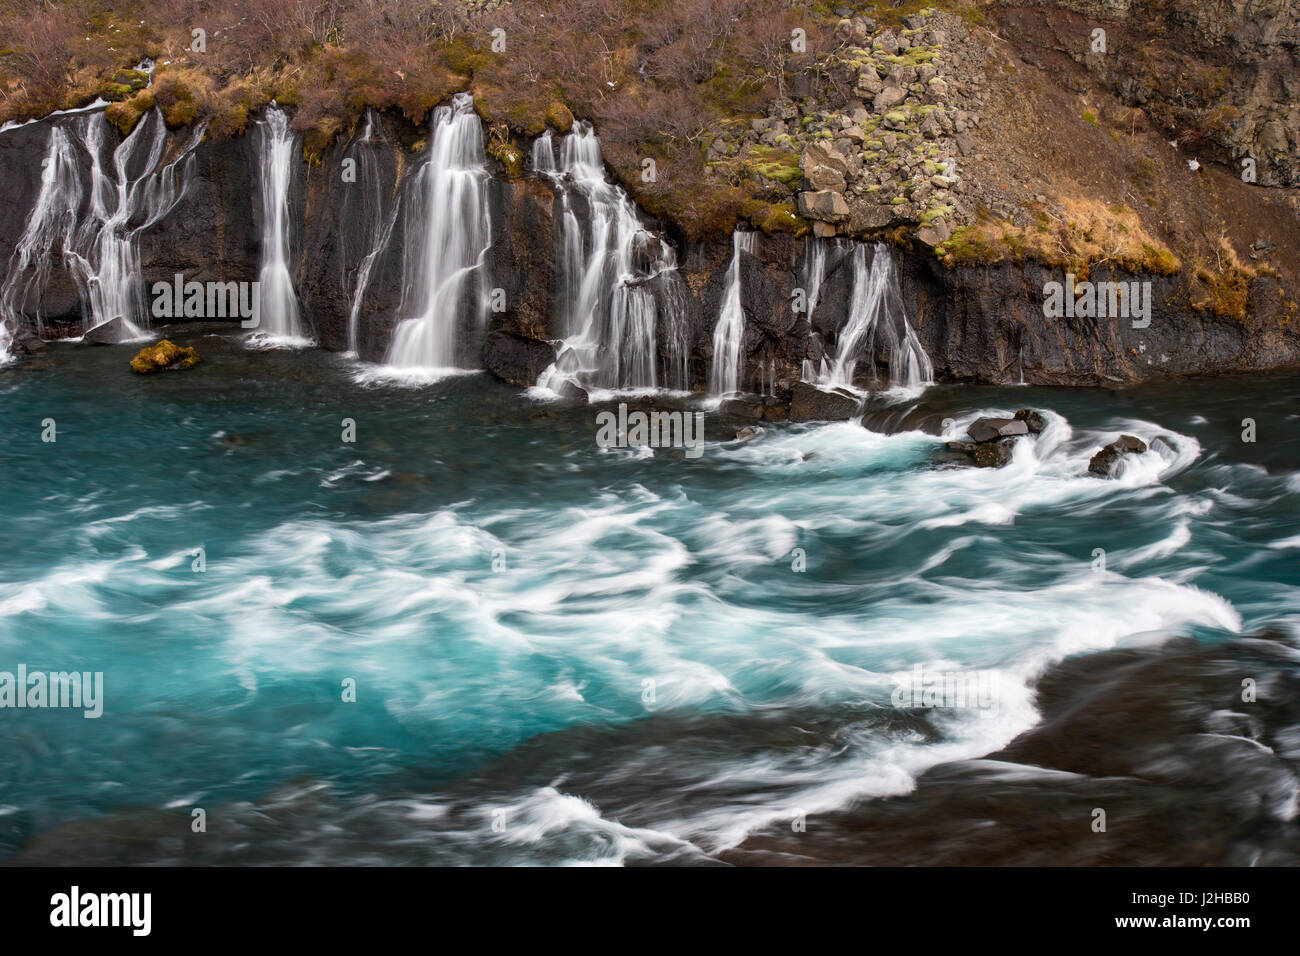 hraunfossar-series-of-waterfalls-pouring